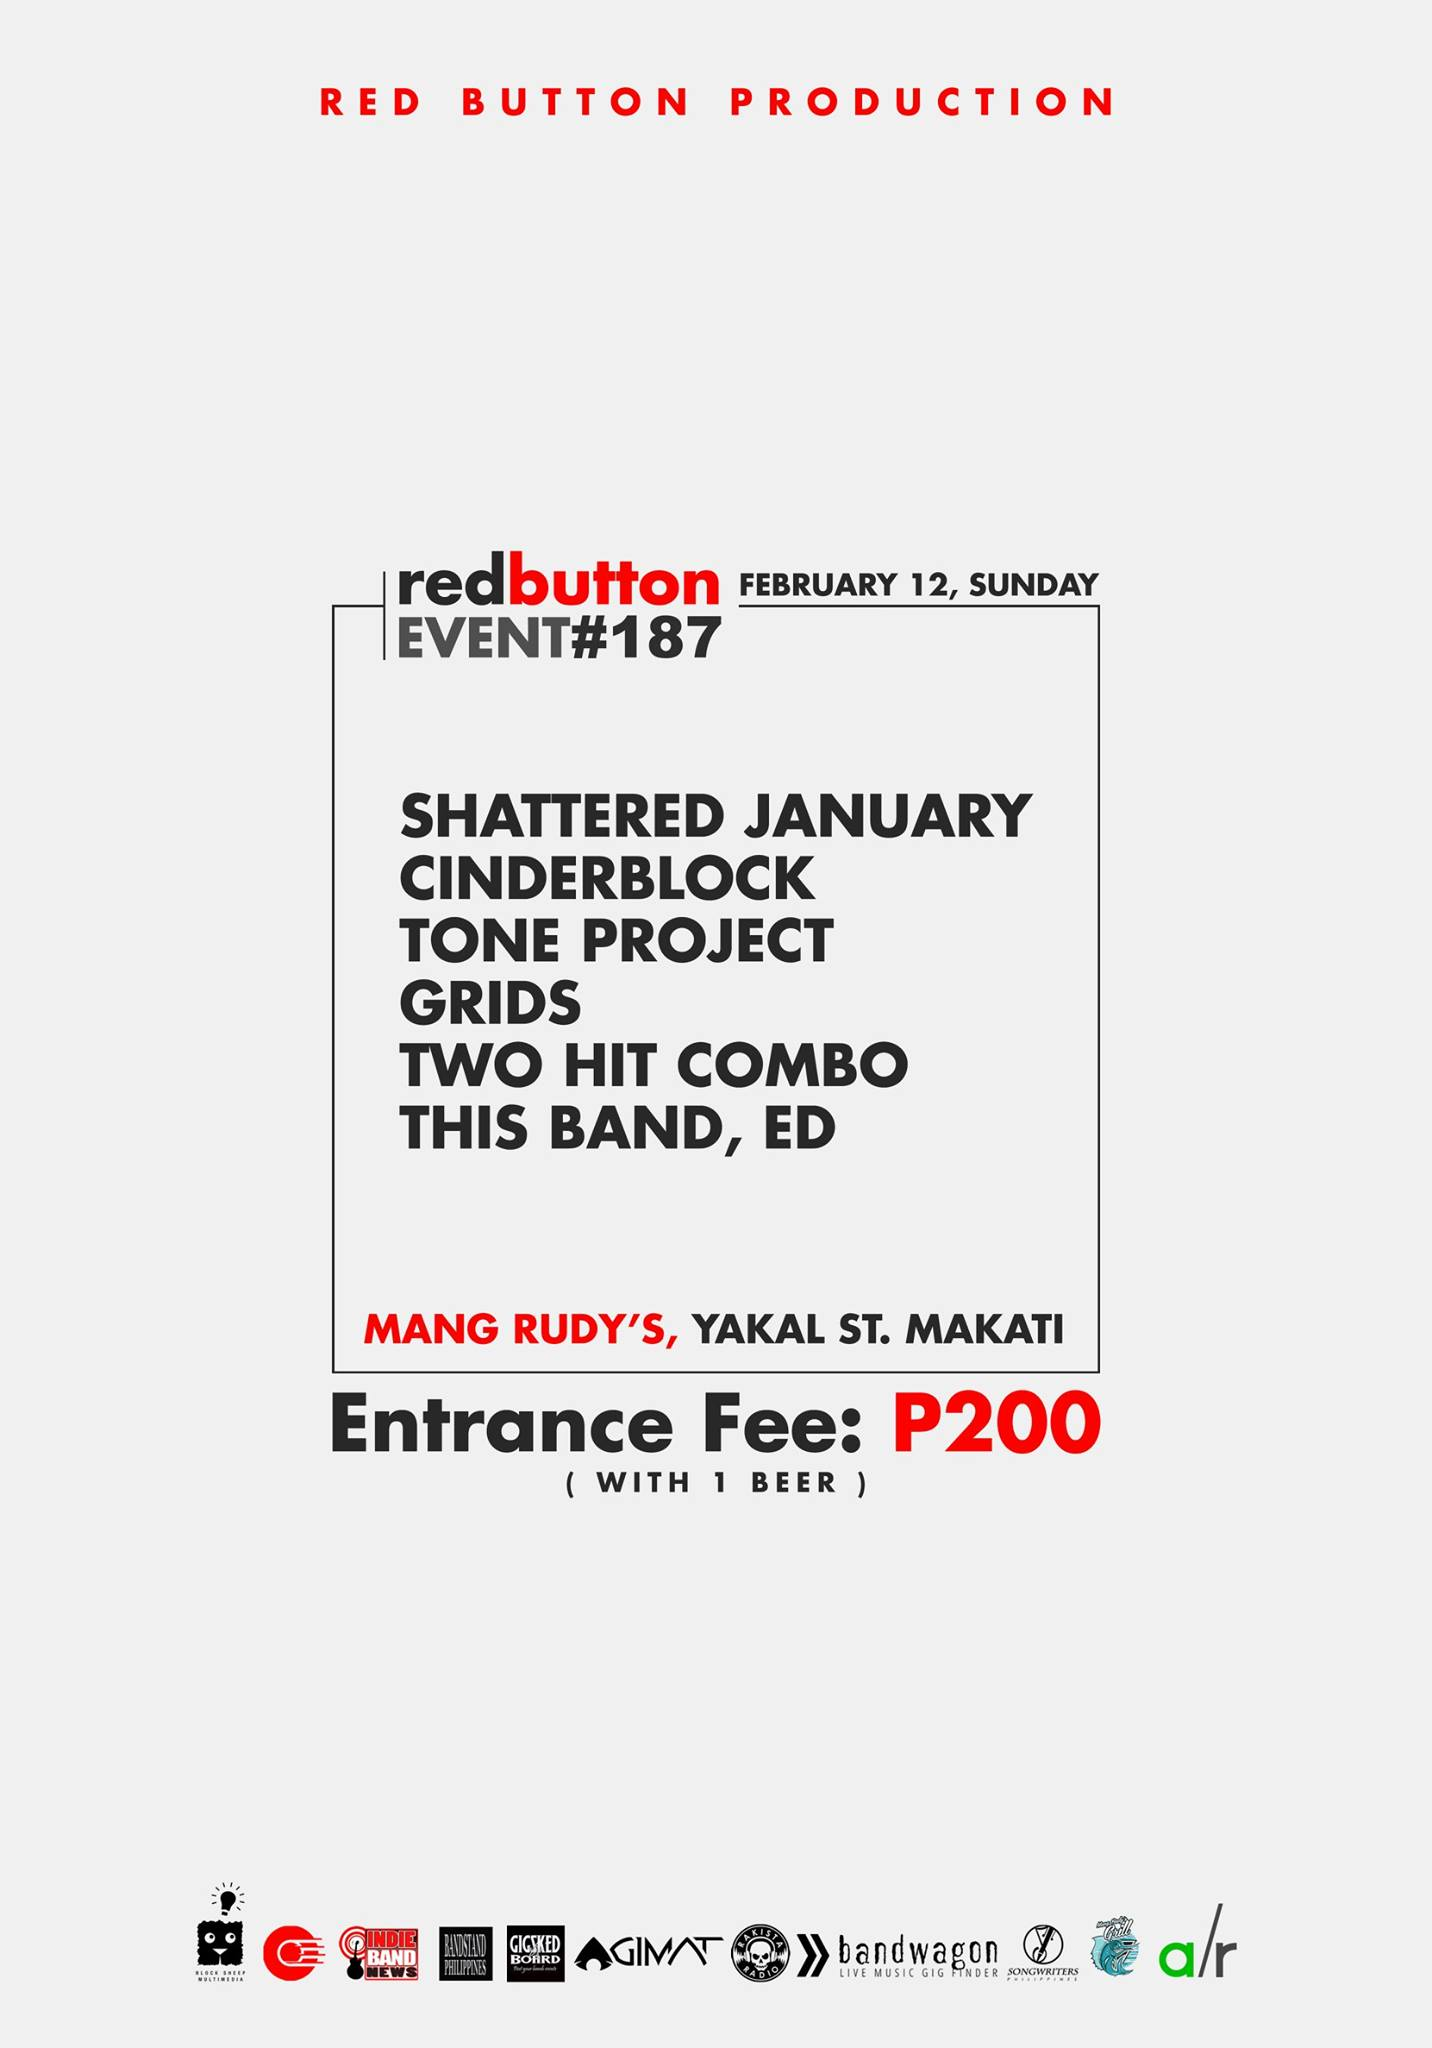 Red Button Production Page Liked · 7 hrs · Red Button Production present Red Button Event #187 February 12, Sunday at Mang Rudy's Tuna Grill And Papaitan, Yakal St., Makati Entrance Fee: P200 with 1 Drink performances by: Shattered January CinderBlock Tone Project Grids Two Hit Combo This Band, Ed Event Link: https://www.facebook.com/events/1402060563168902/ Media Partners: Block Sheep Multimedia Indie Band News Bandstand Philippines Gig Sked Board Agimat: Sining at Kulturang Pinoy Rakista Radio! Bandwagon Songwriters Philippines Adobo Radio — at Mang Rudy's Tuna Grill And Papaitan.